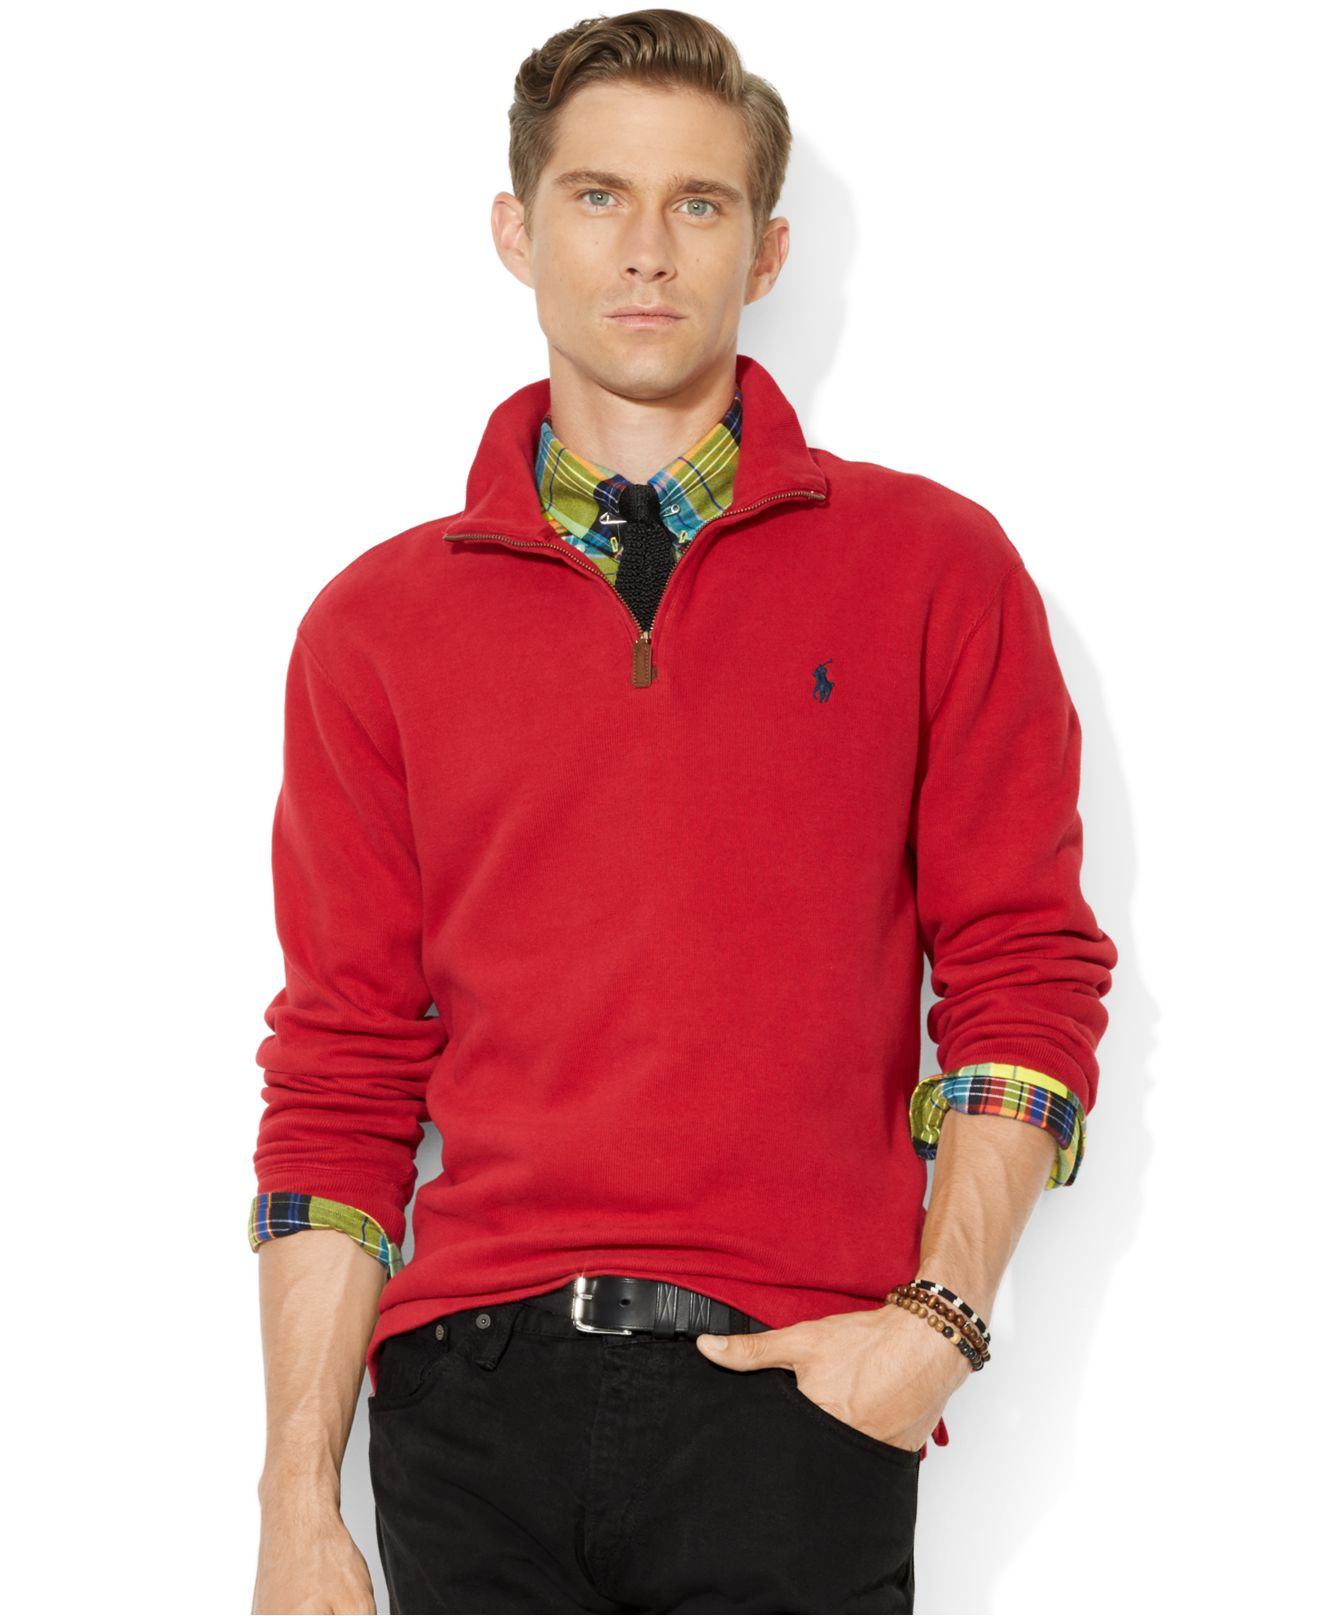 Polo ralph lauren French-Rib Half-Zip Pullover Sweater in Red for ...